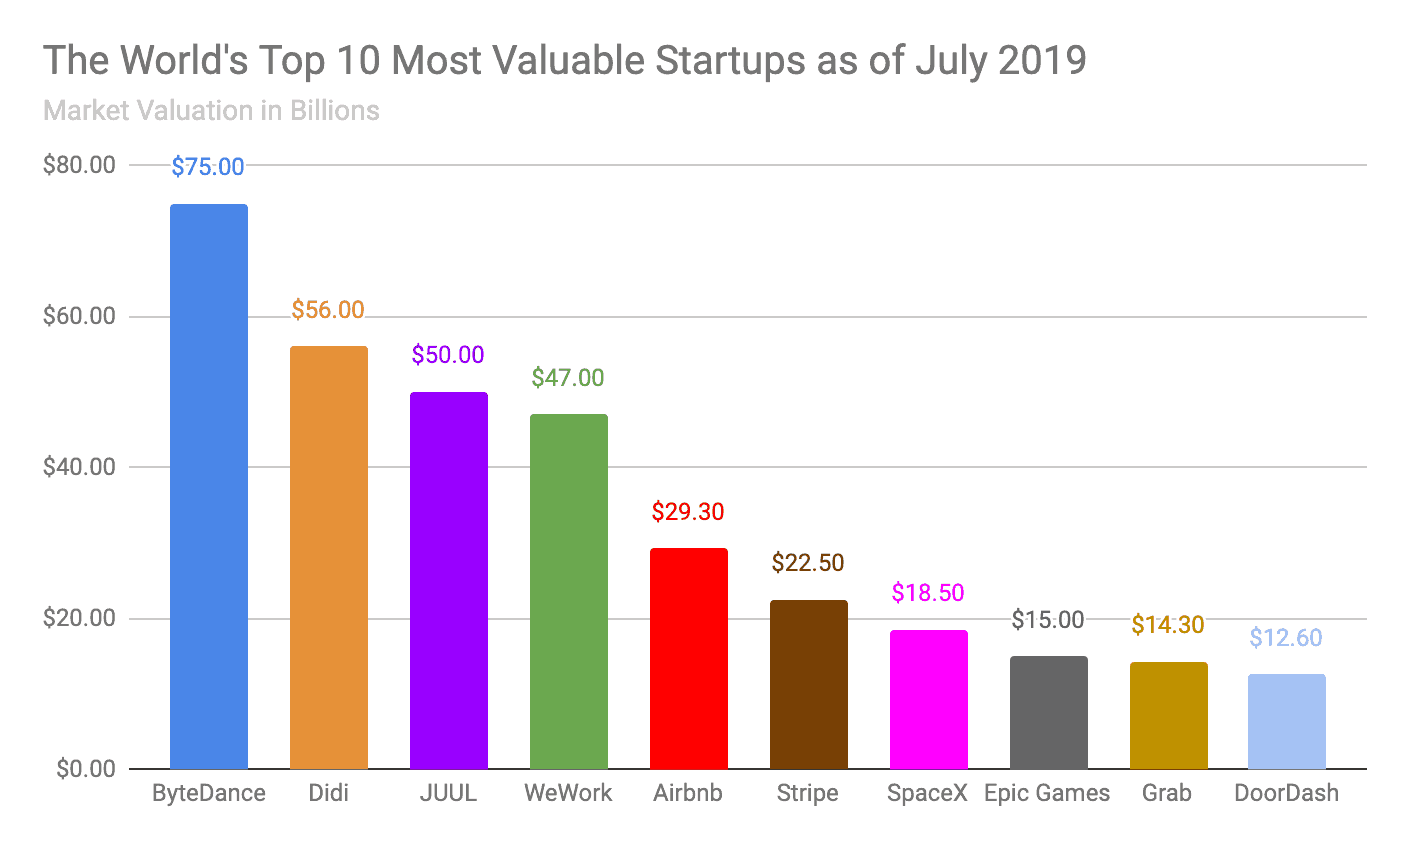 Image of a graph depicting the world's top 10 startups as of July 2019